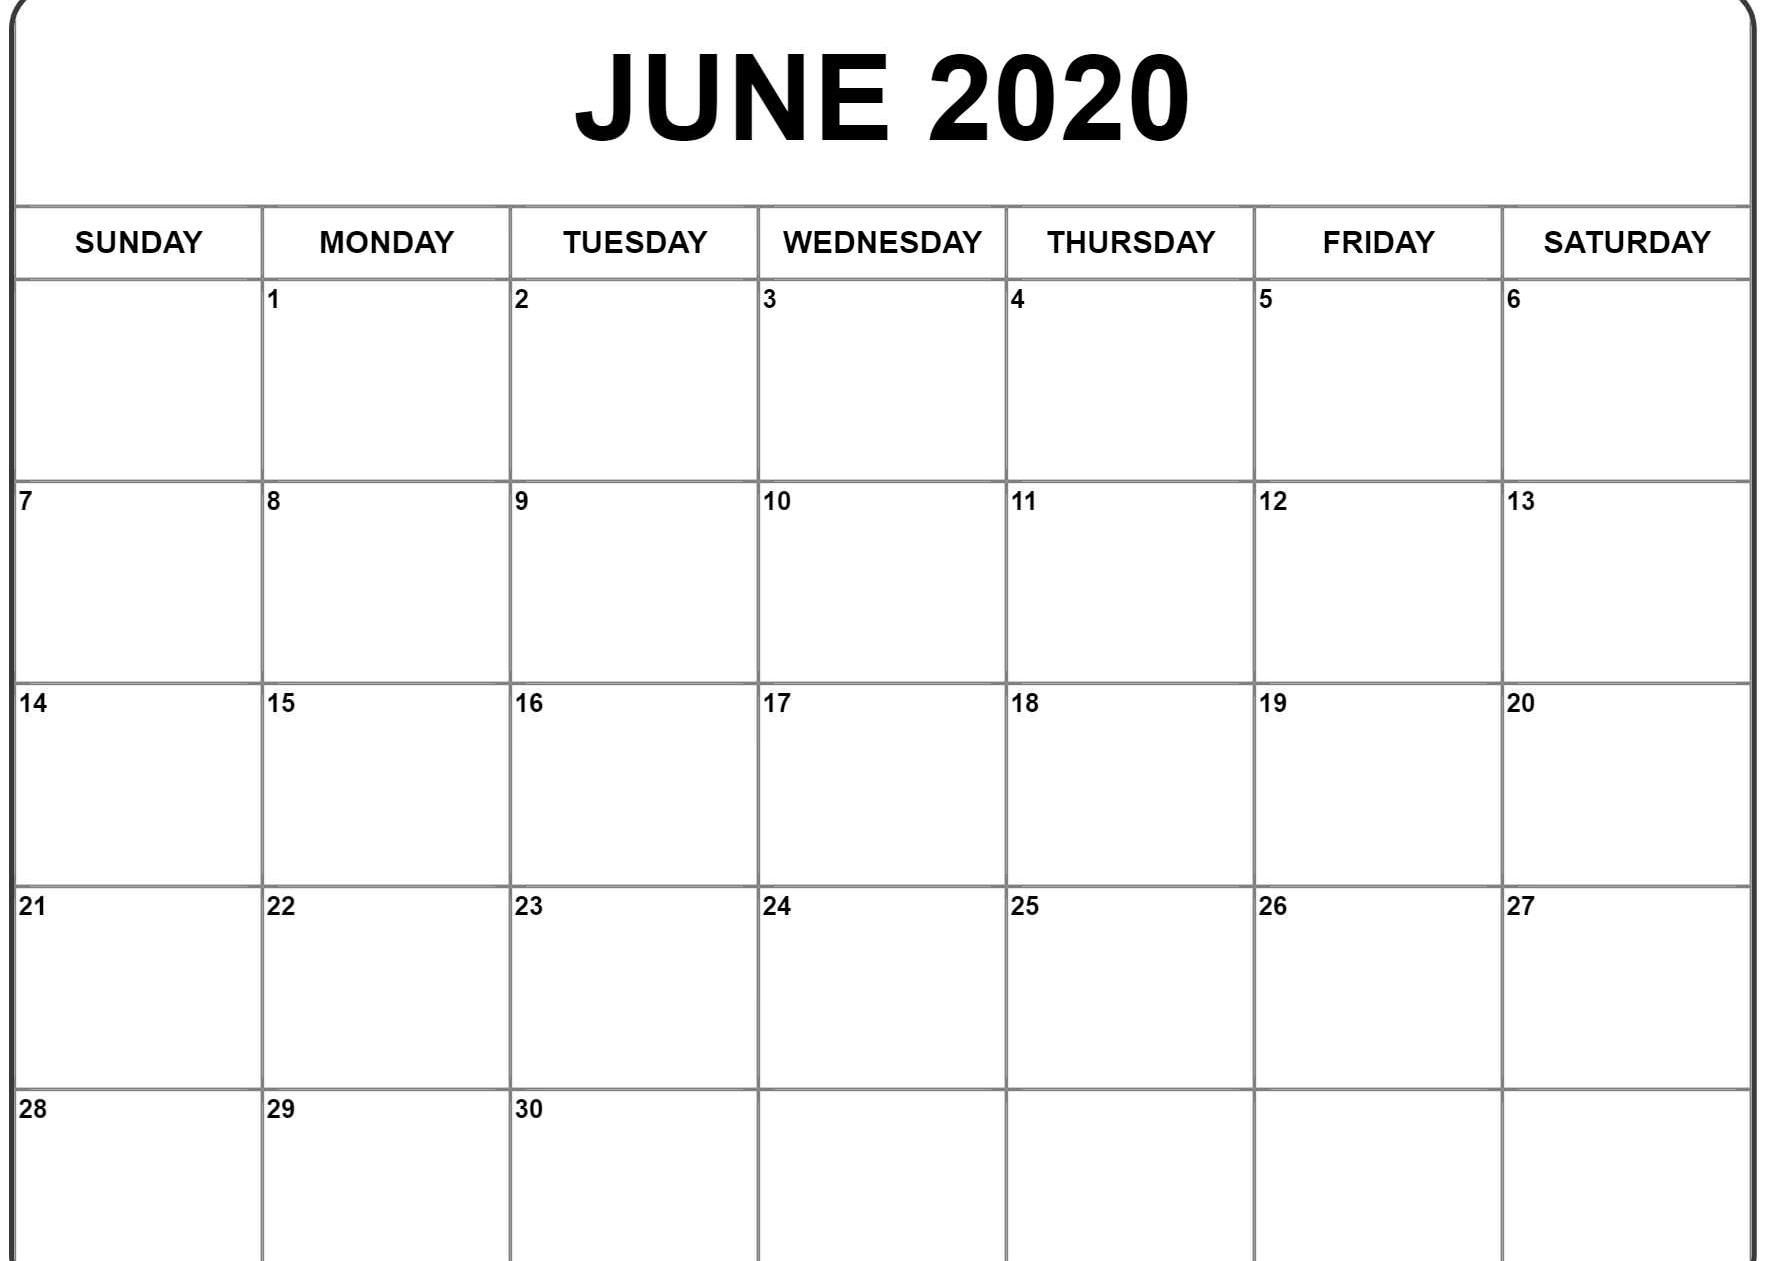 June 2020 Calendar | Printable Calendar Template, Father's